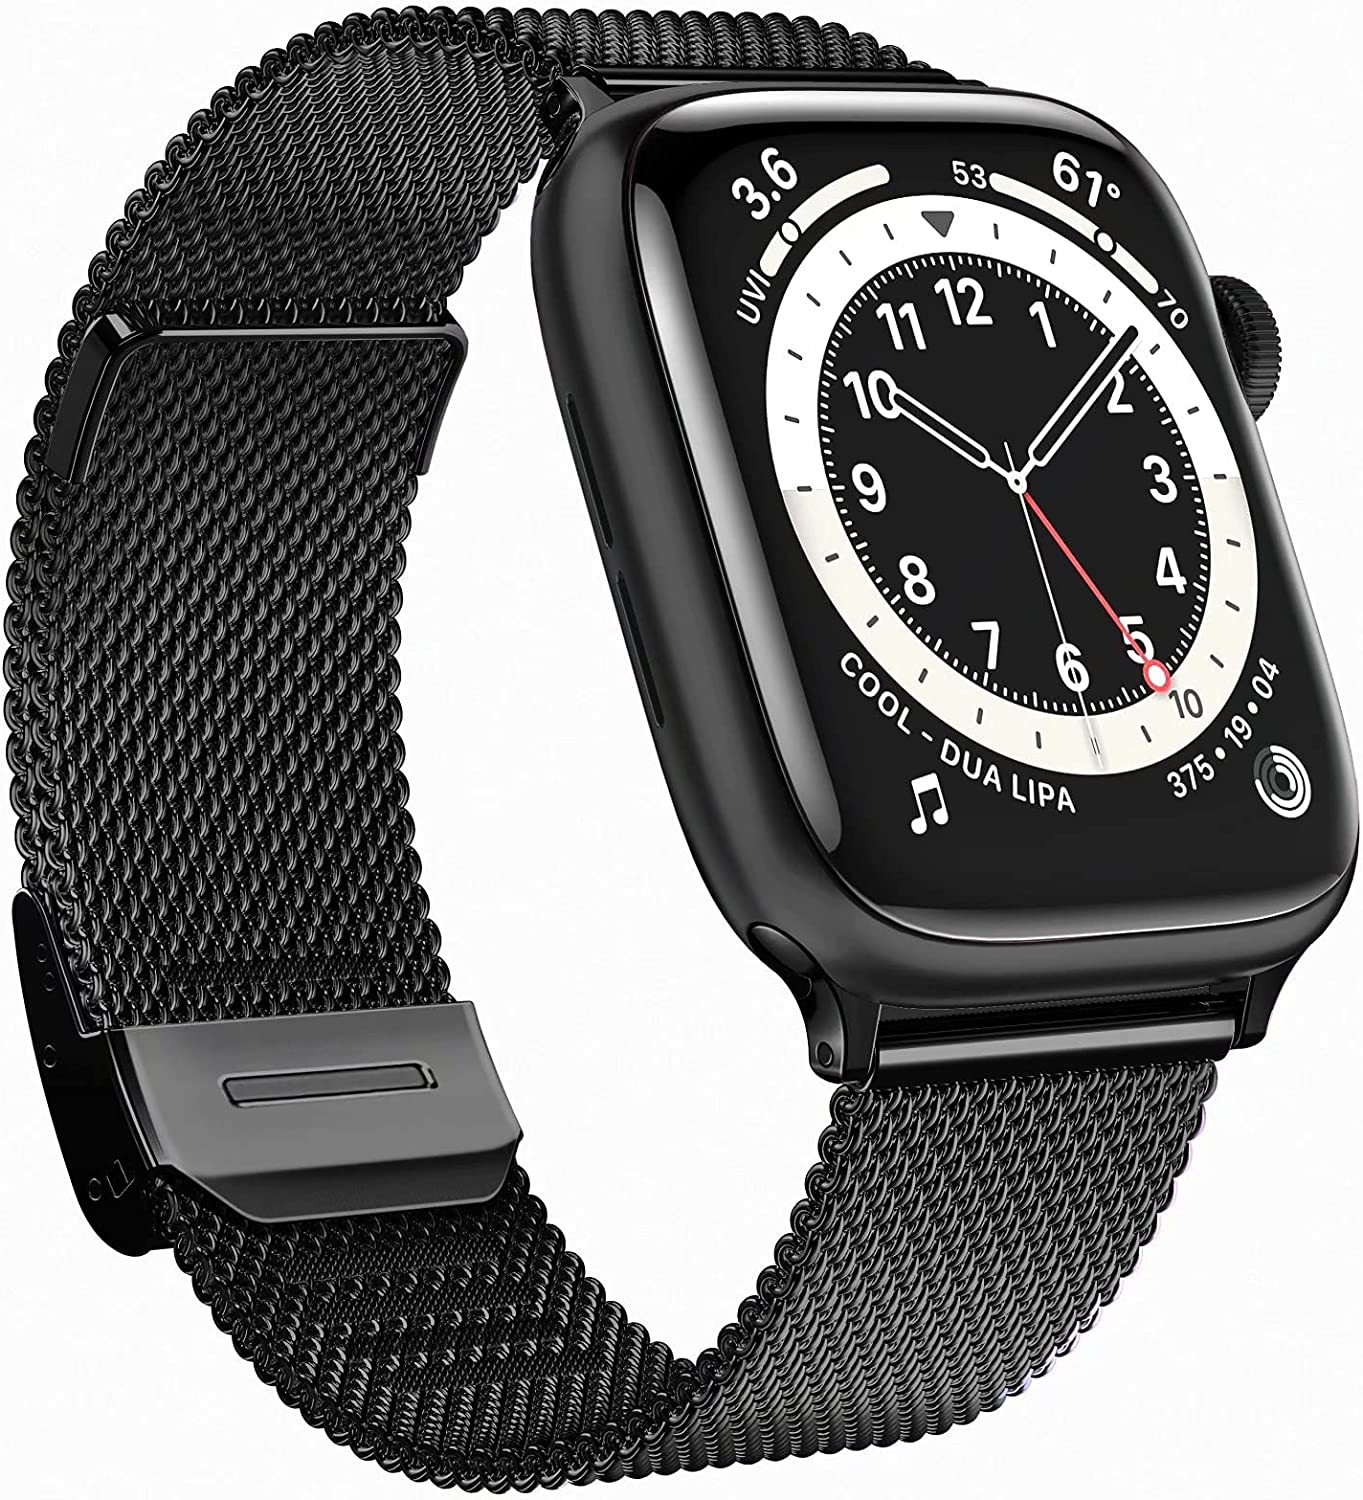 GBPOOT Bands Compatible with Apple Watch Bands 38mm 40mm 42mm 44mm,Clasp Stainless Steel Milanese Bands for iwatch Series 6/5/4/3/2/1/SE Men Women(Black,38/40mm)